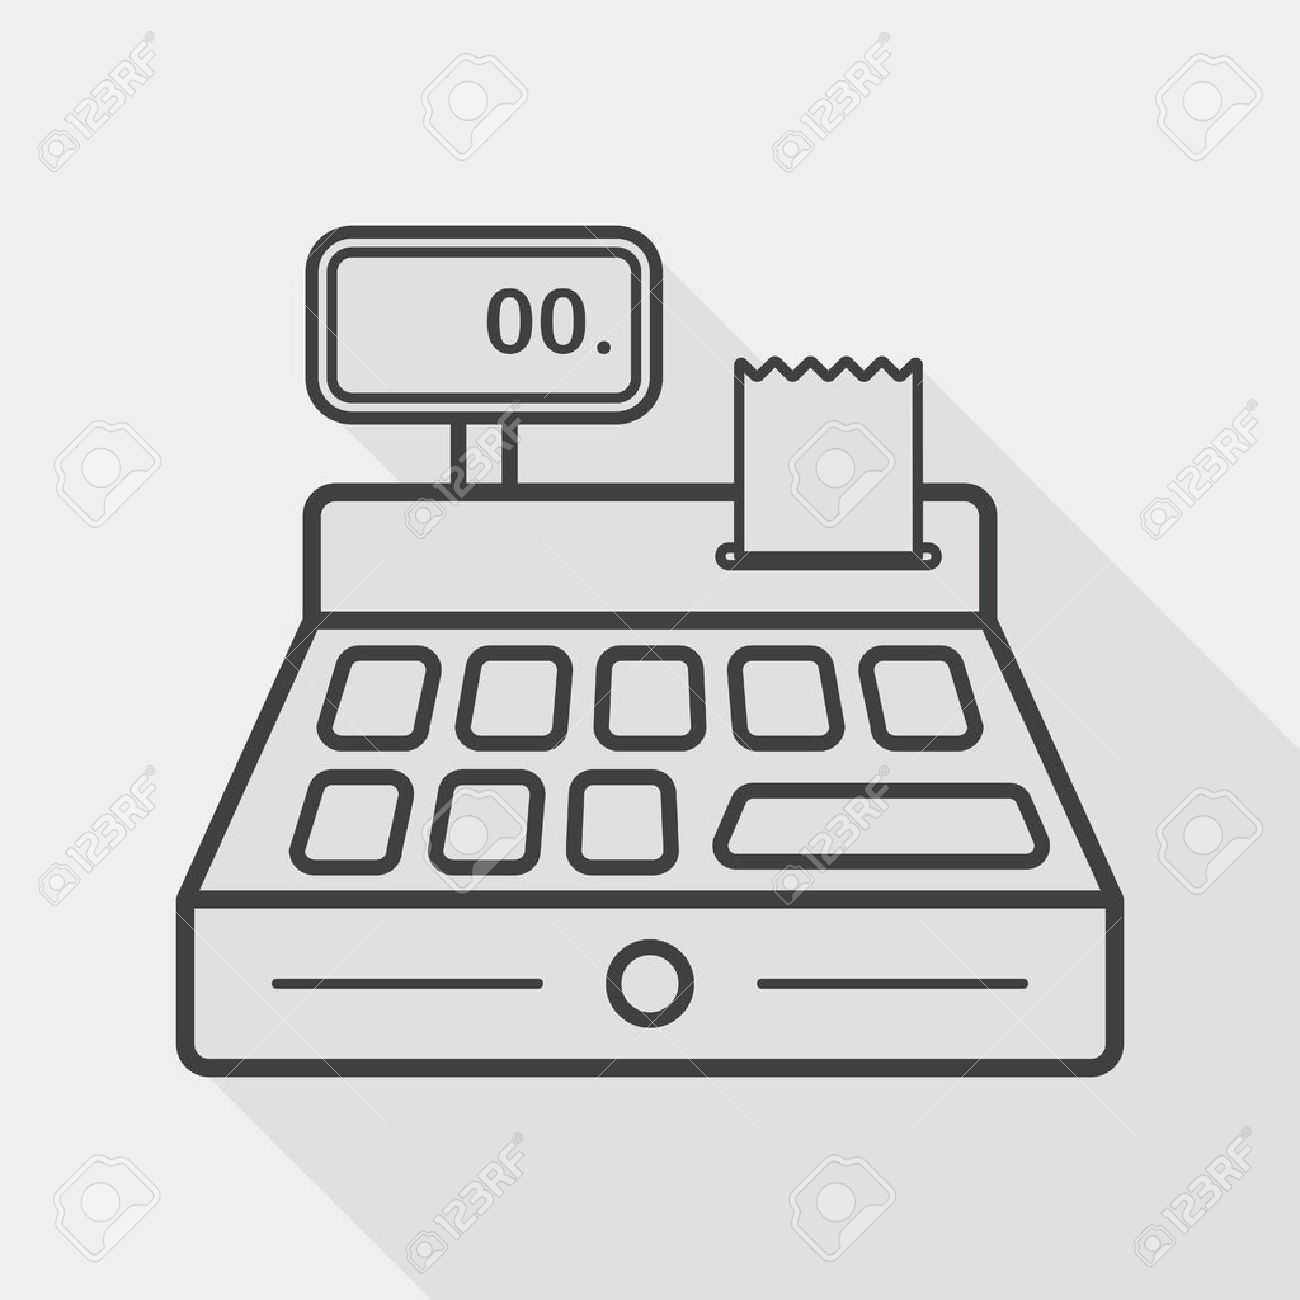 shopping cash register flat icon with long shadow, line icon - 39493674